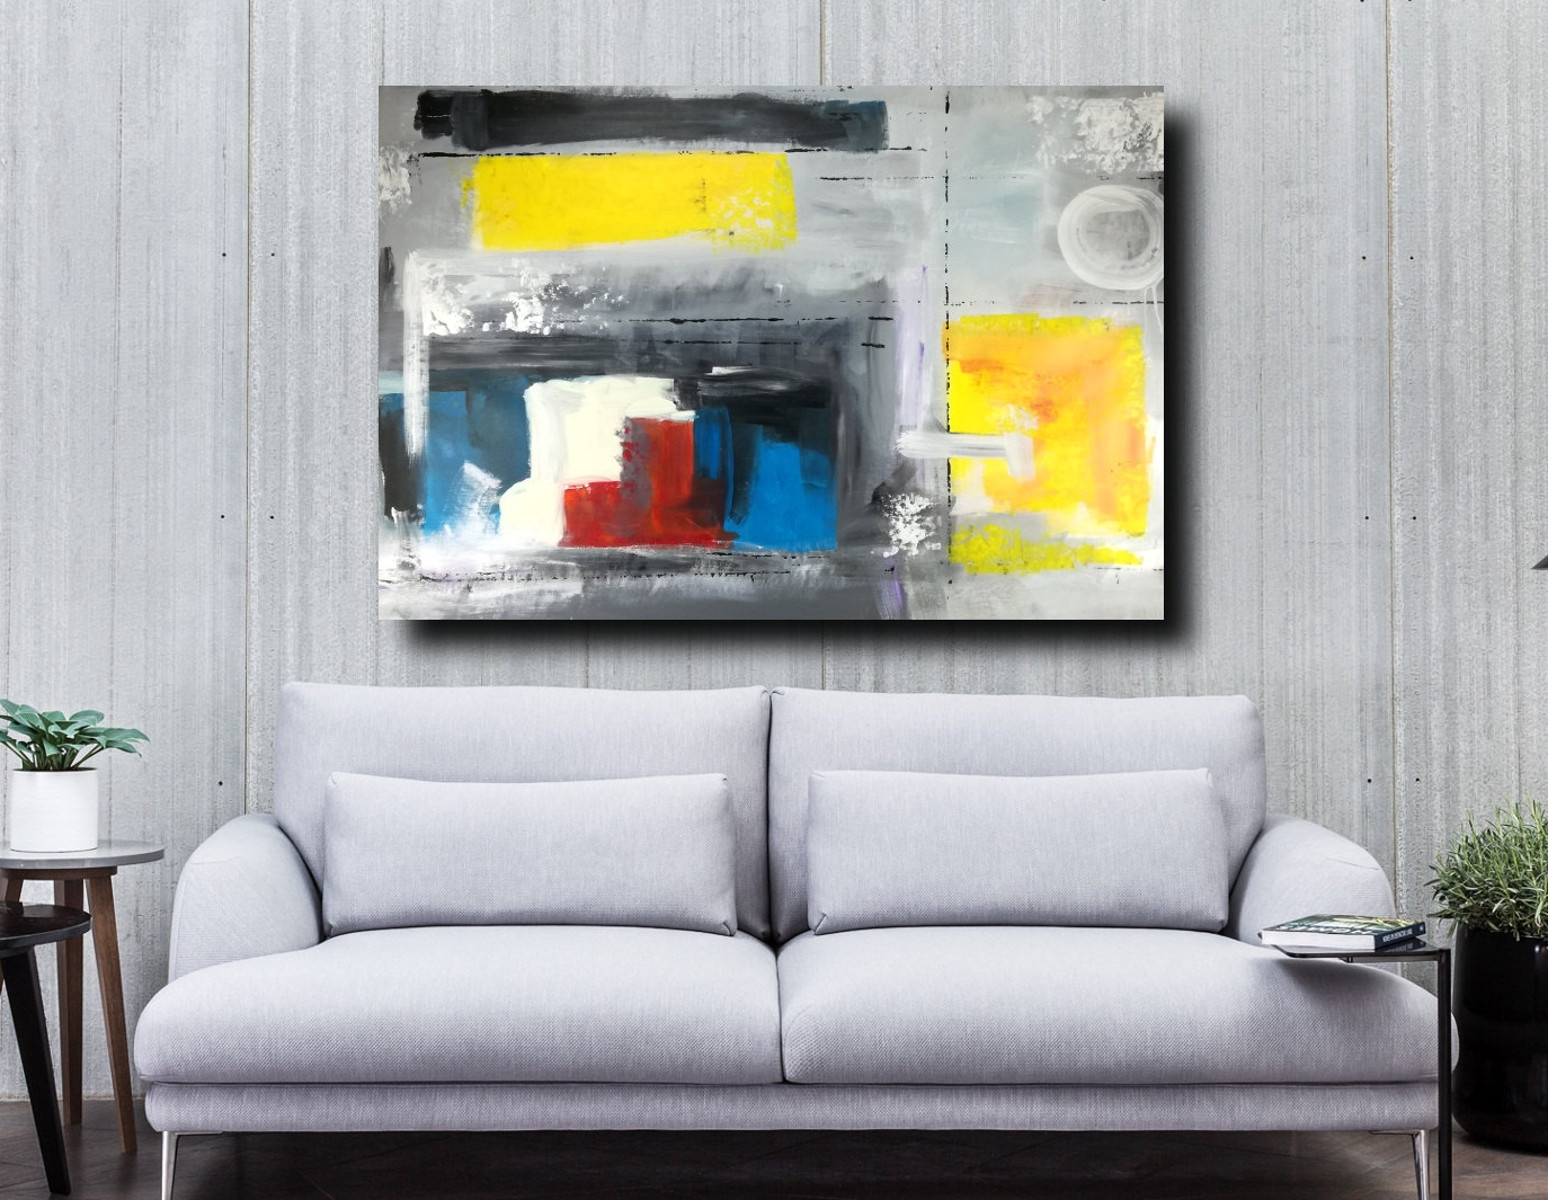 Wall Art Large Painting 120x80 Intended For Large Abstract Wall Art (View 5 of 20)